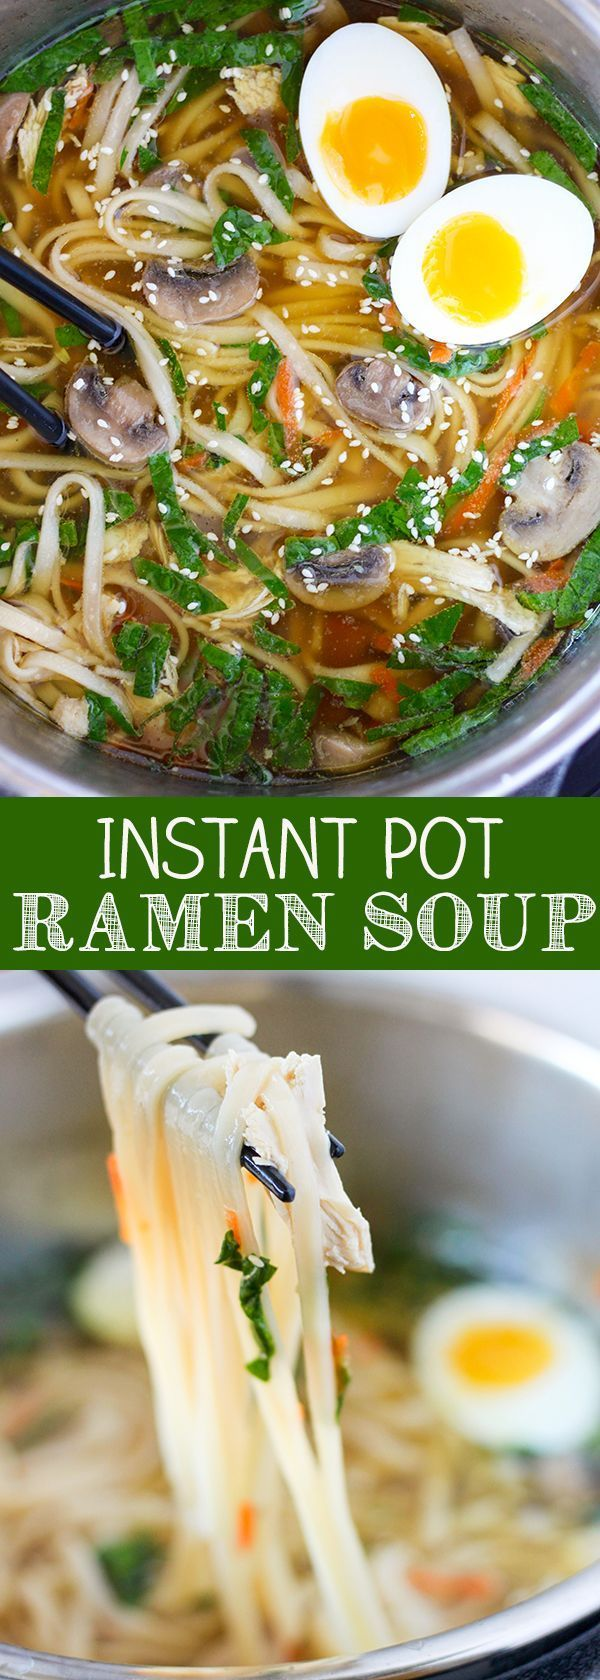 Fresh ginger, garlic and mushroom bring together a rich and delicious homemade chicken stock in this quick and easy Instant Pot Ramen Soup. If you're looking for easy soup recipes to warm your winter, this will be perfect for you. For more easy food recipes, creative craft ideas, easy home decor and DIY projects, check us out at #no2pencil. #food #soupoftheday #winterrecipes #recipeoftheday #recipeideas